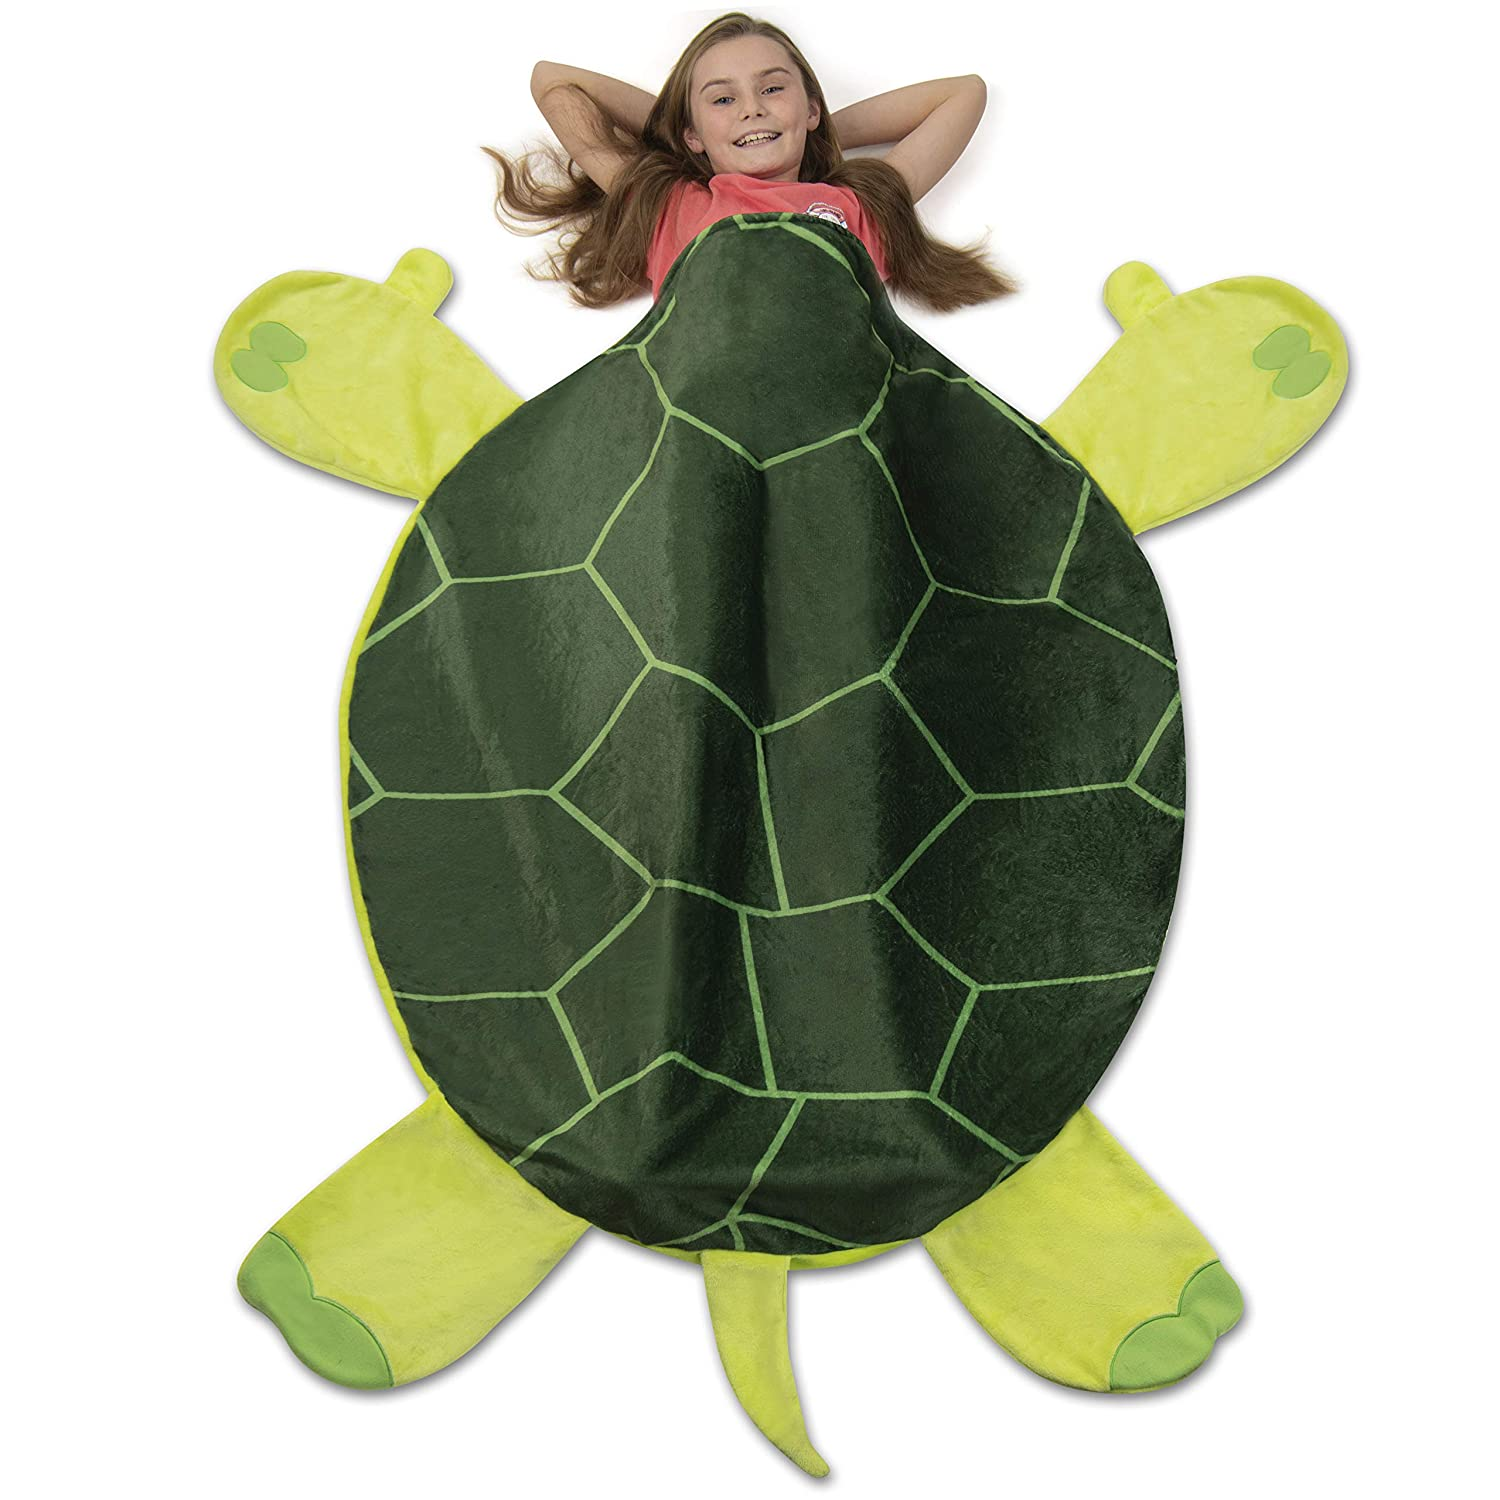 Cozy Turtle Blanket for Children, Pocket Style Kids Tail Blanket Made of Extra-Soft and Durable Fabric | Tortoise Design | Warm and Comfortable, Sleep Sacks for Movie Night, Sleepovers, Camping